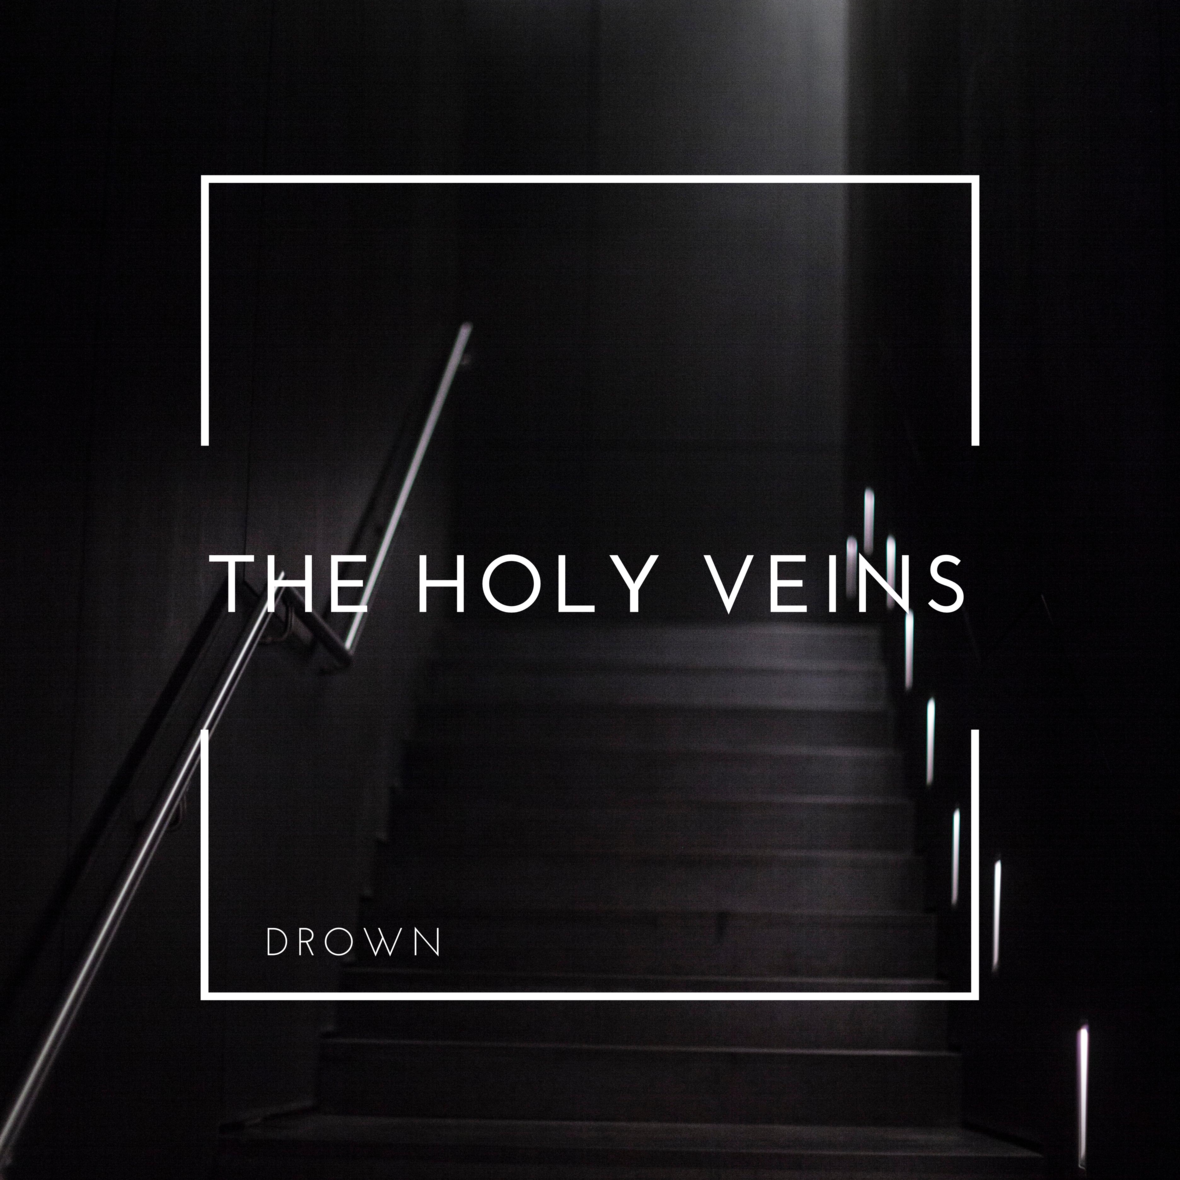 THE HOLY VEINS FIXED FINAL